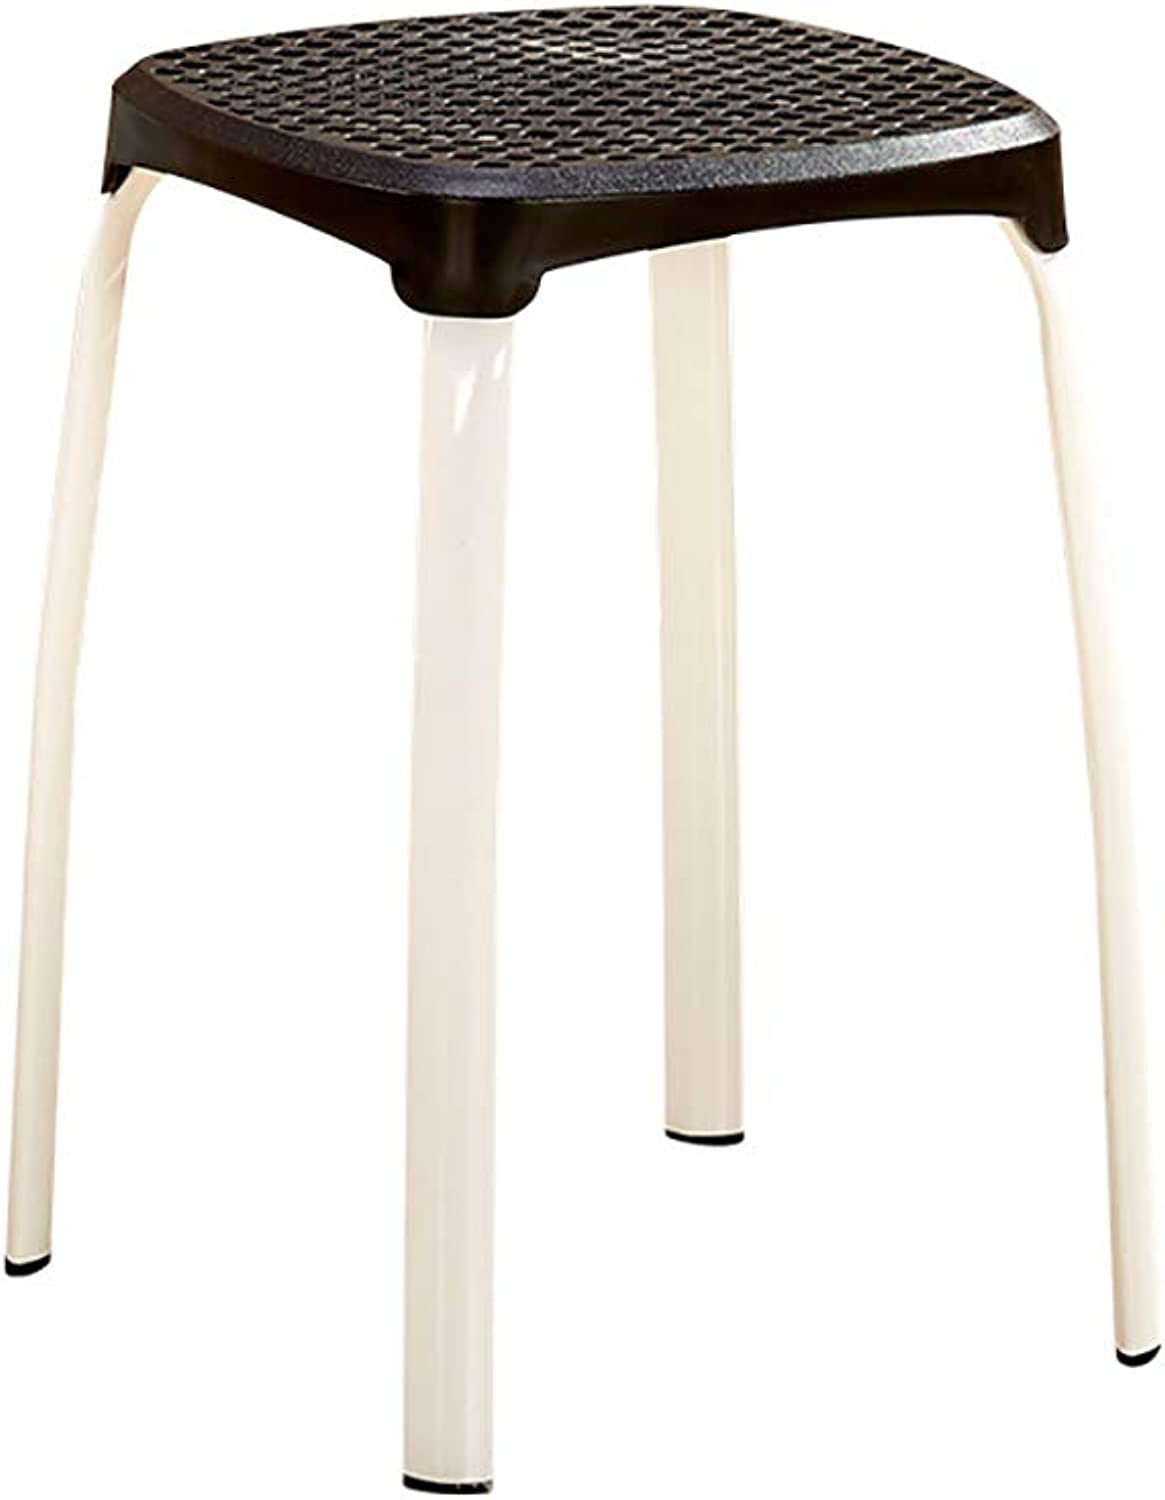 Stool Plastic Stool Metal Stool Table Stool Living Room high Stool Simple Style Four feet Solid color Size  29  29  45cm (color   E)